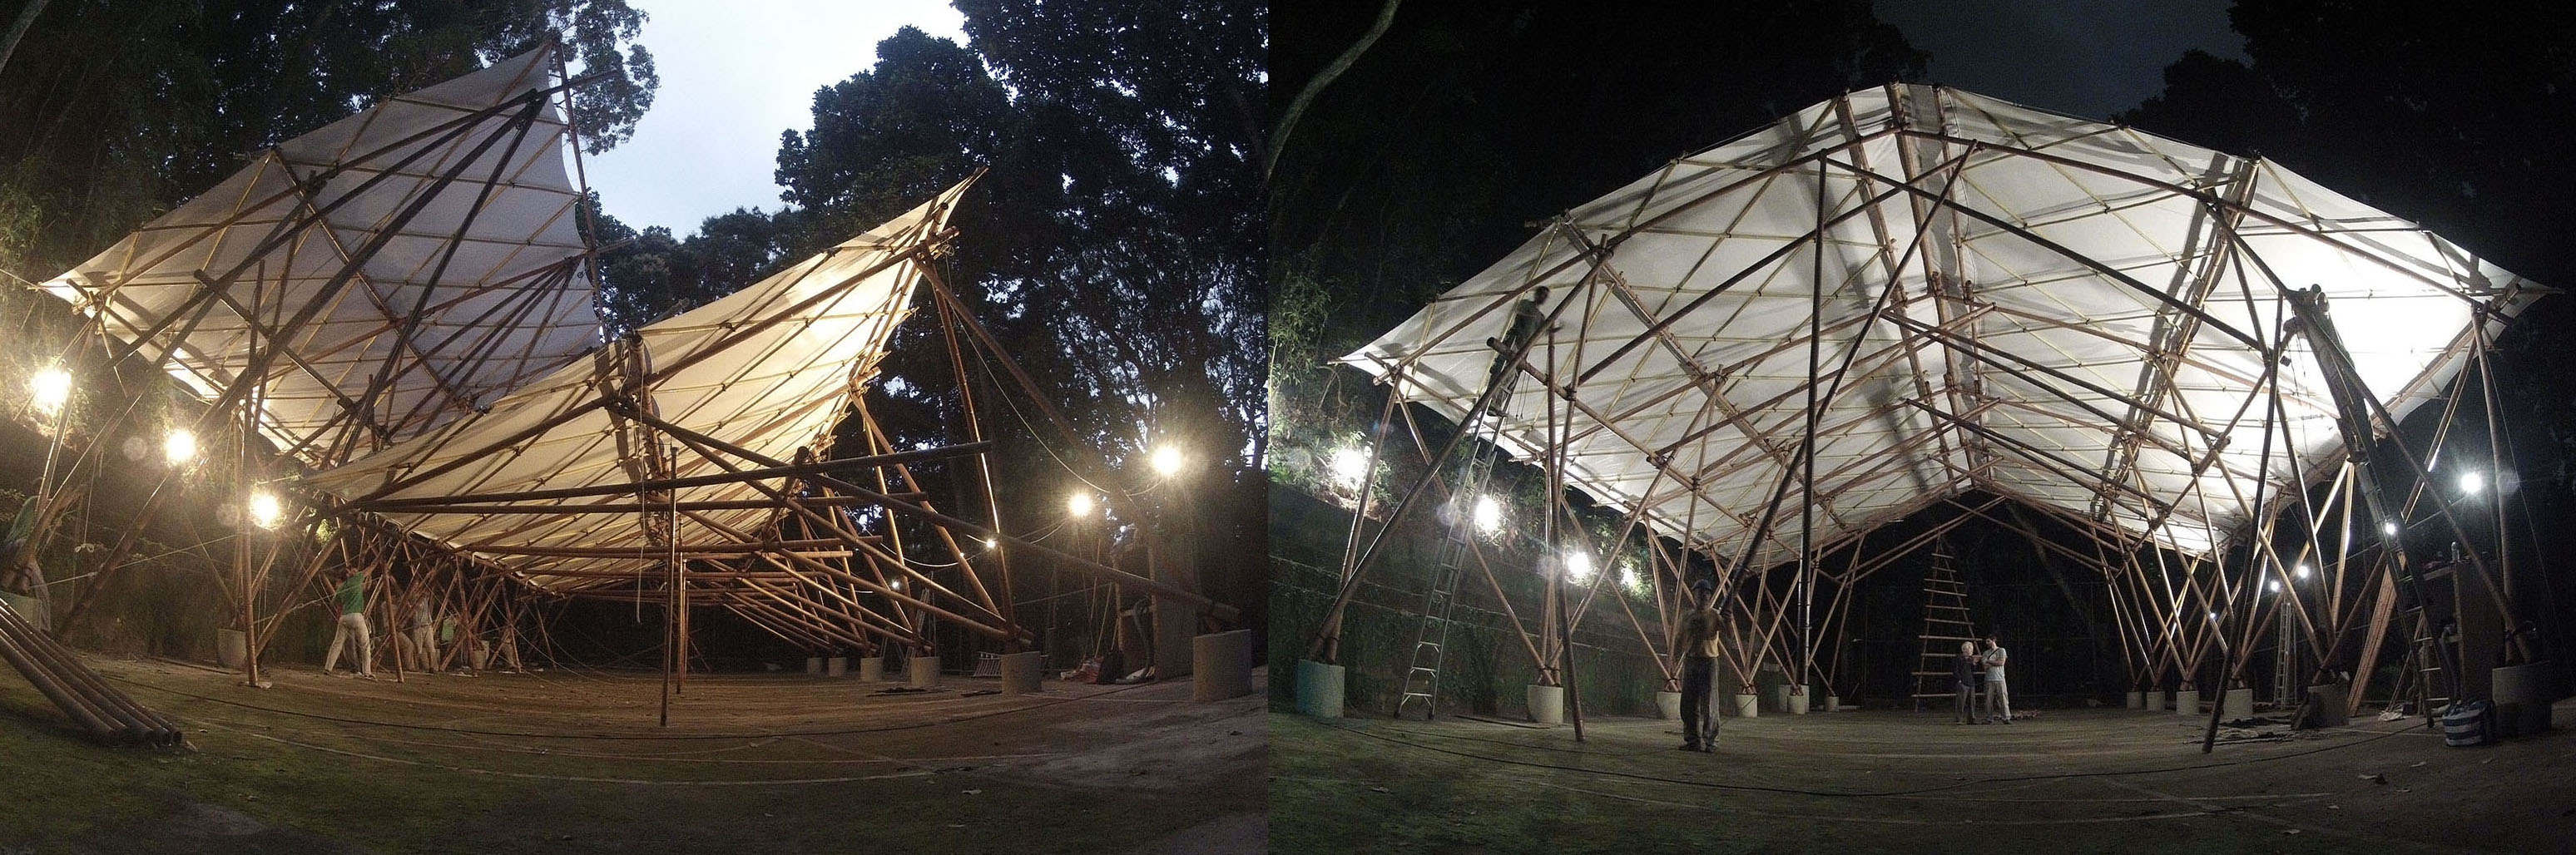 Deployable-bamboo-space-strucure-pavilion-4.jpg